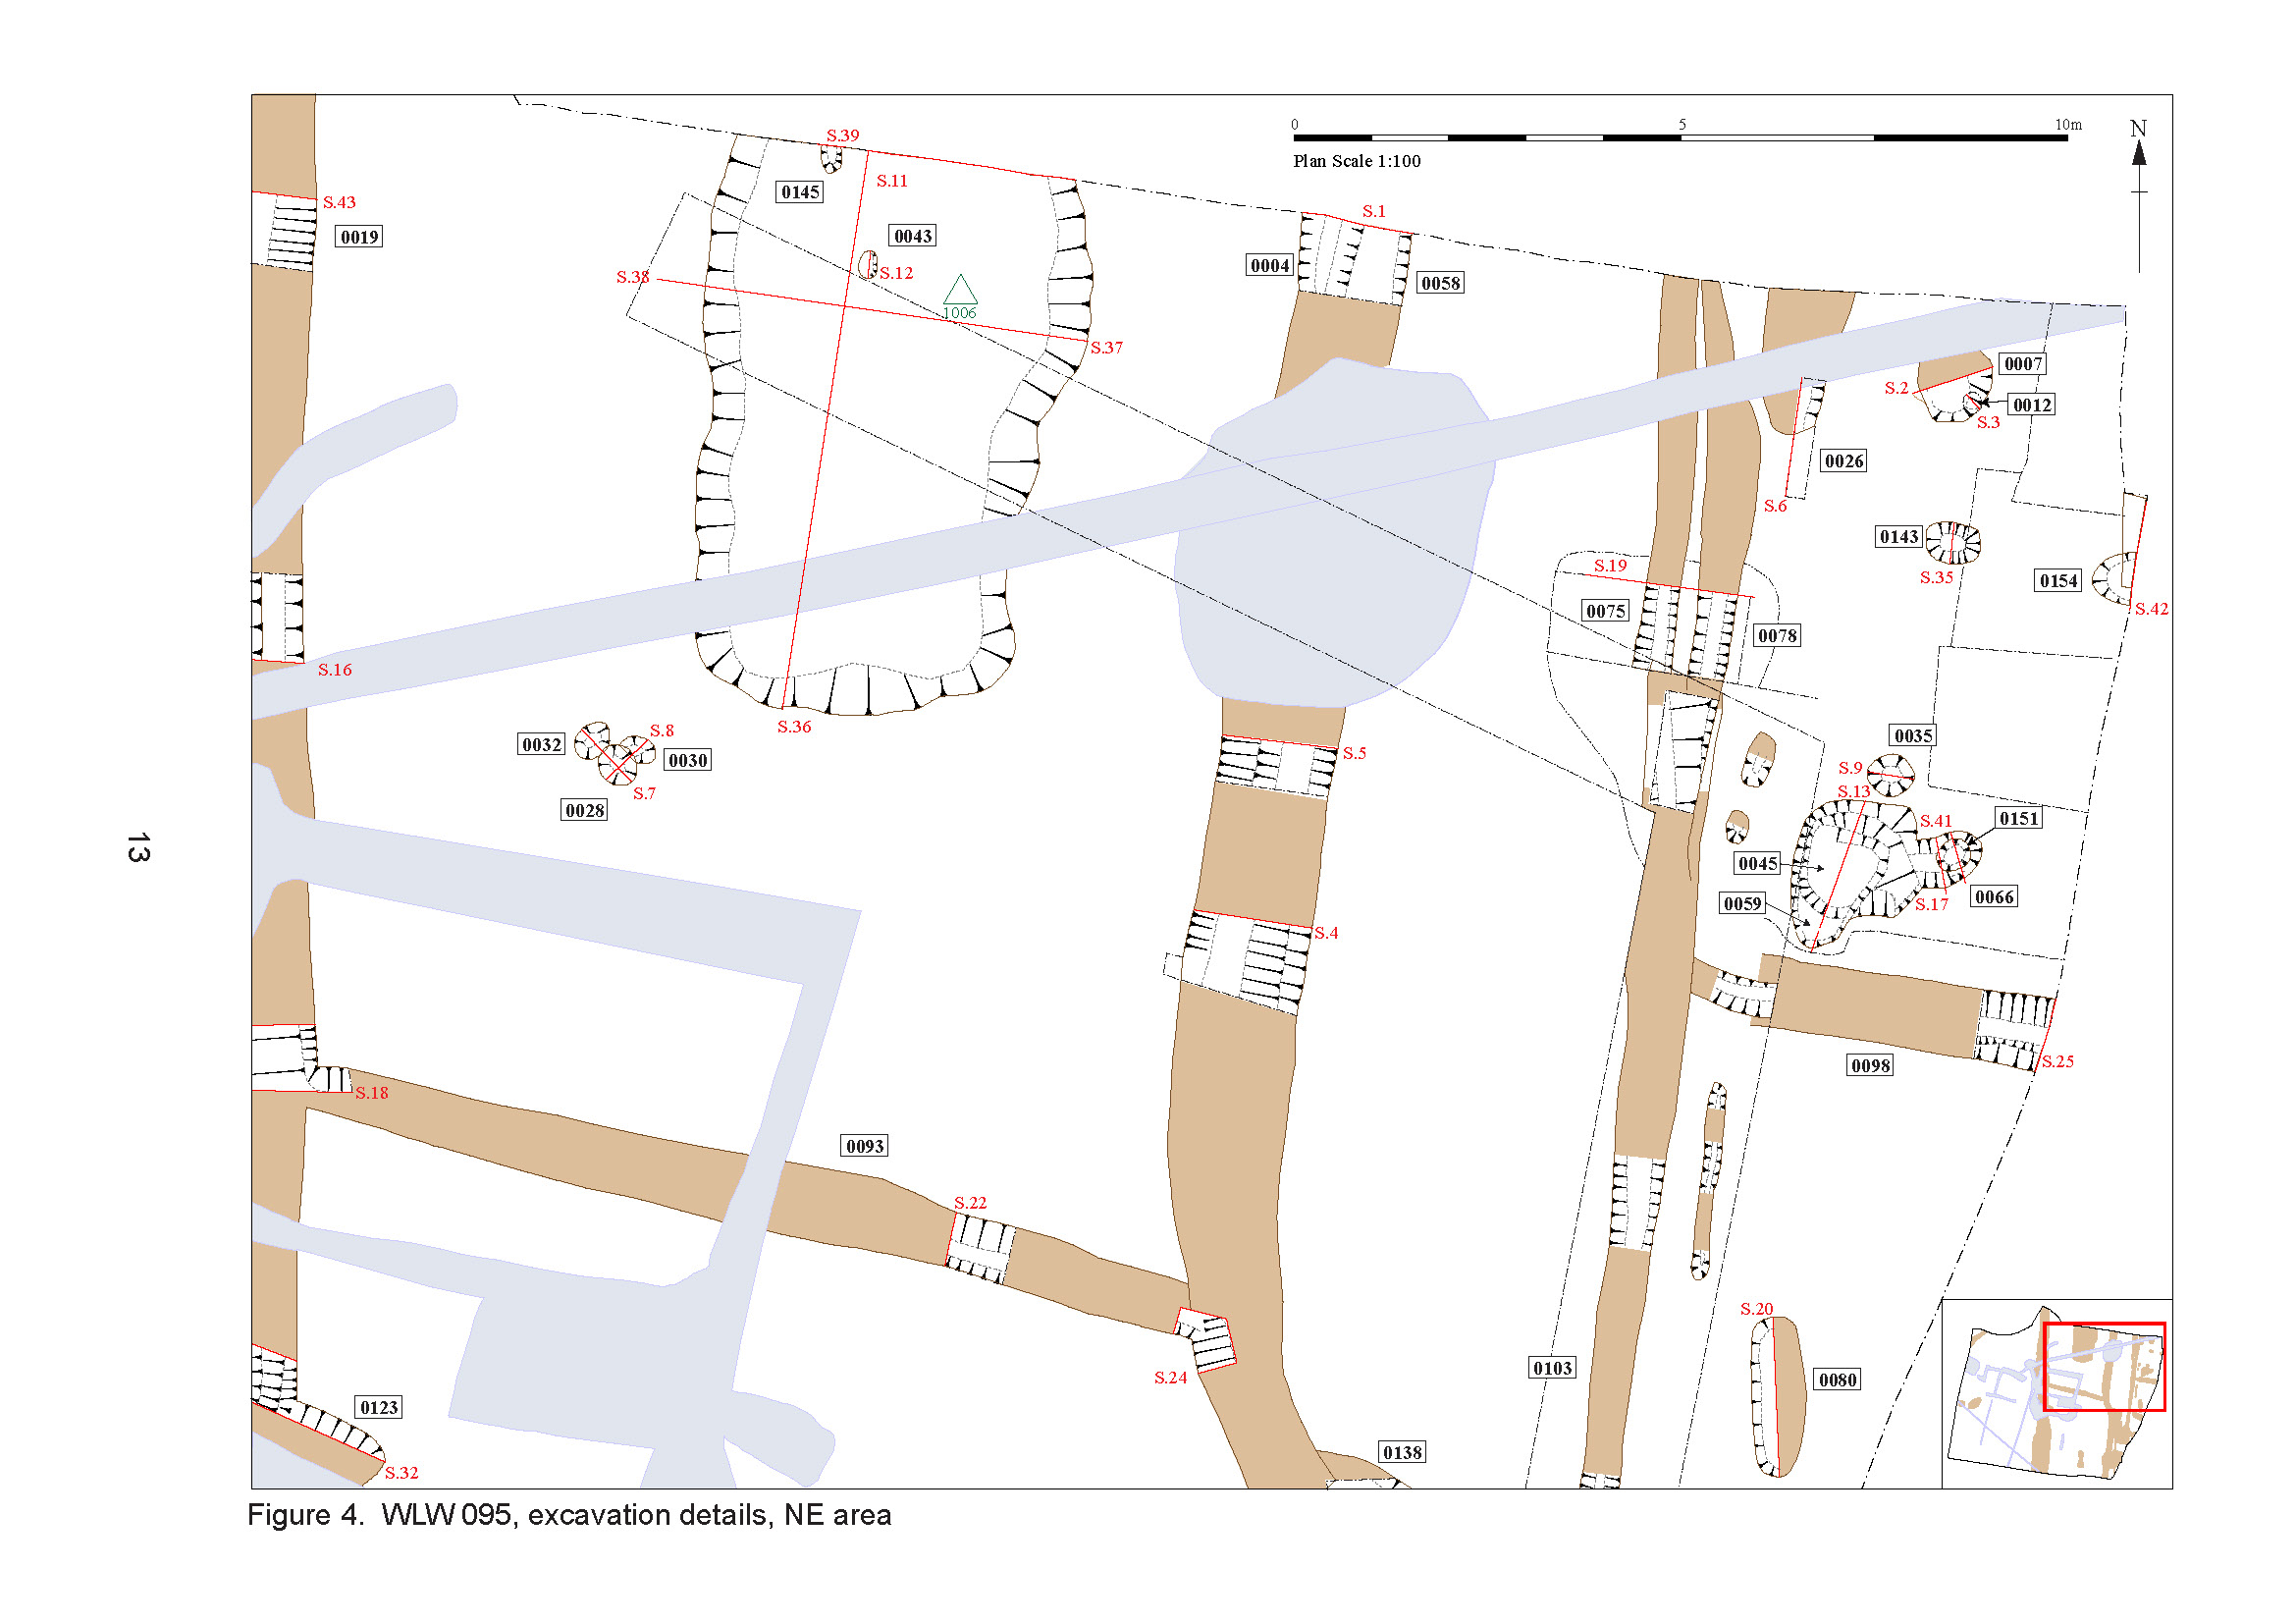 Report site plan from excavations of medieval settlement site at Walsham-le-Willows, Suffolk